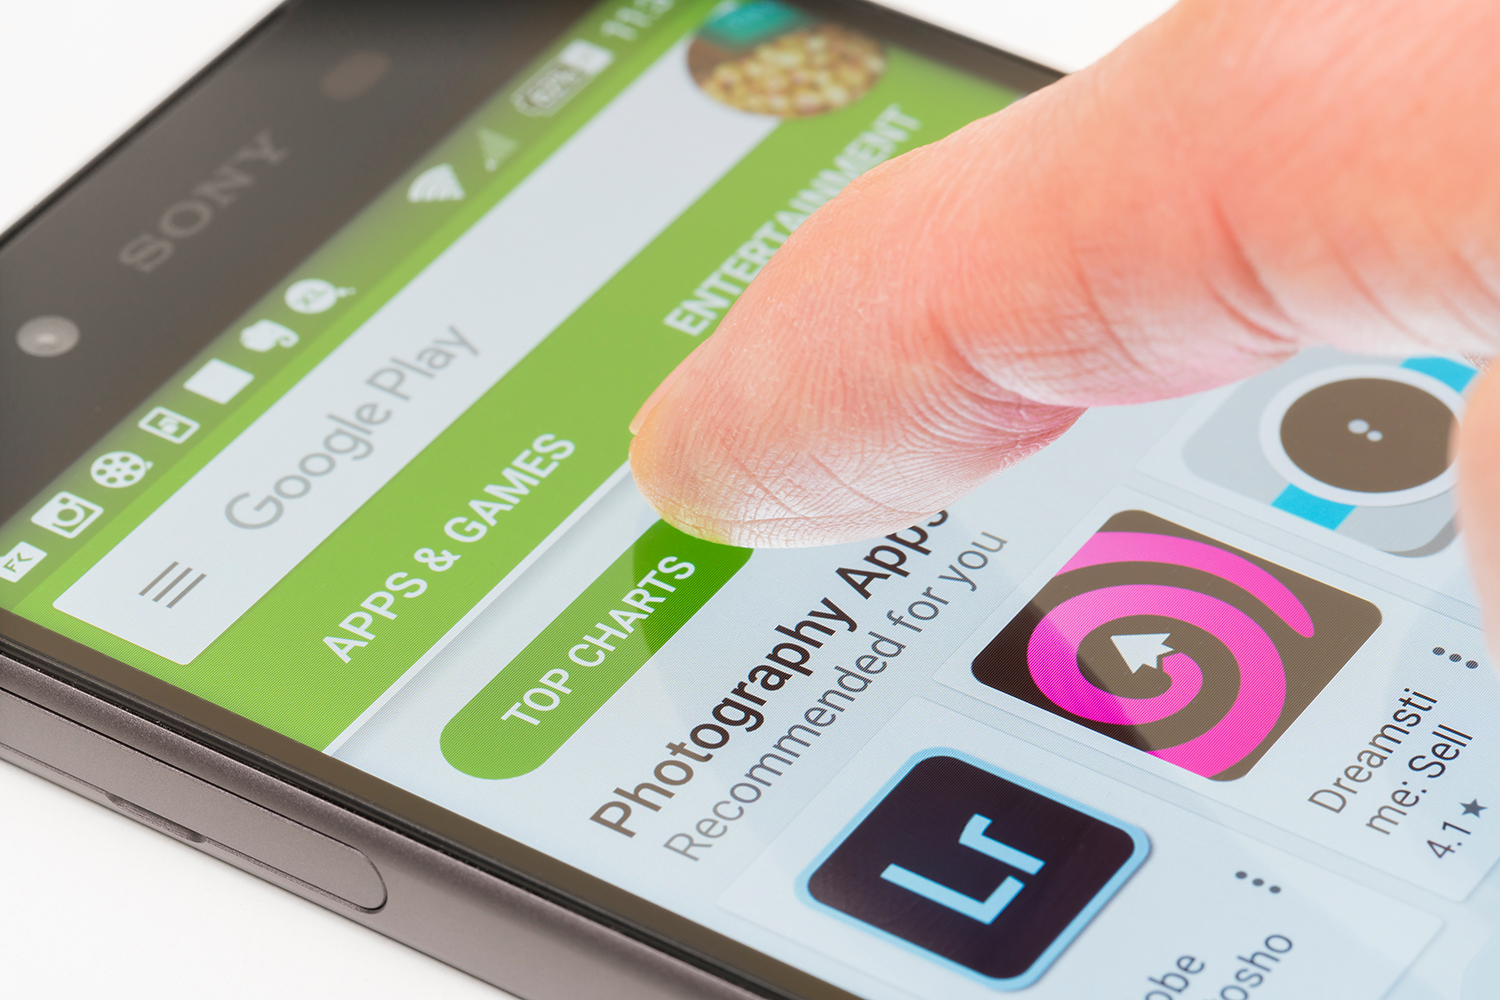 Google Play App Signing reduces the size of apps, and ...